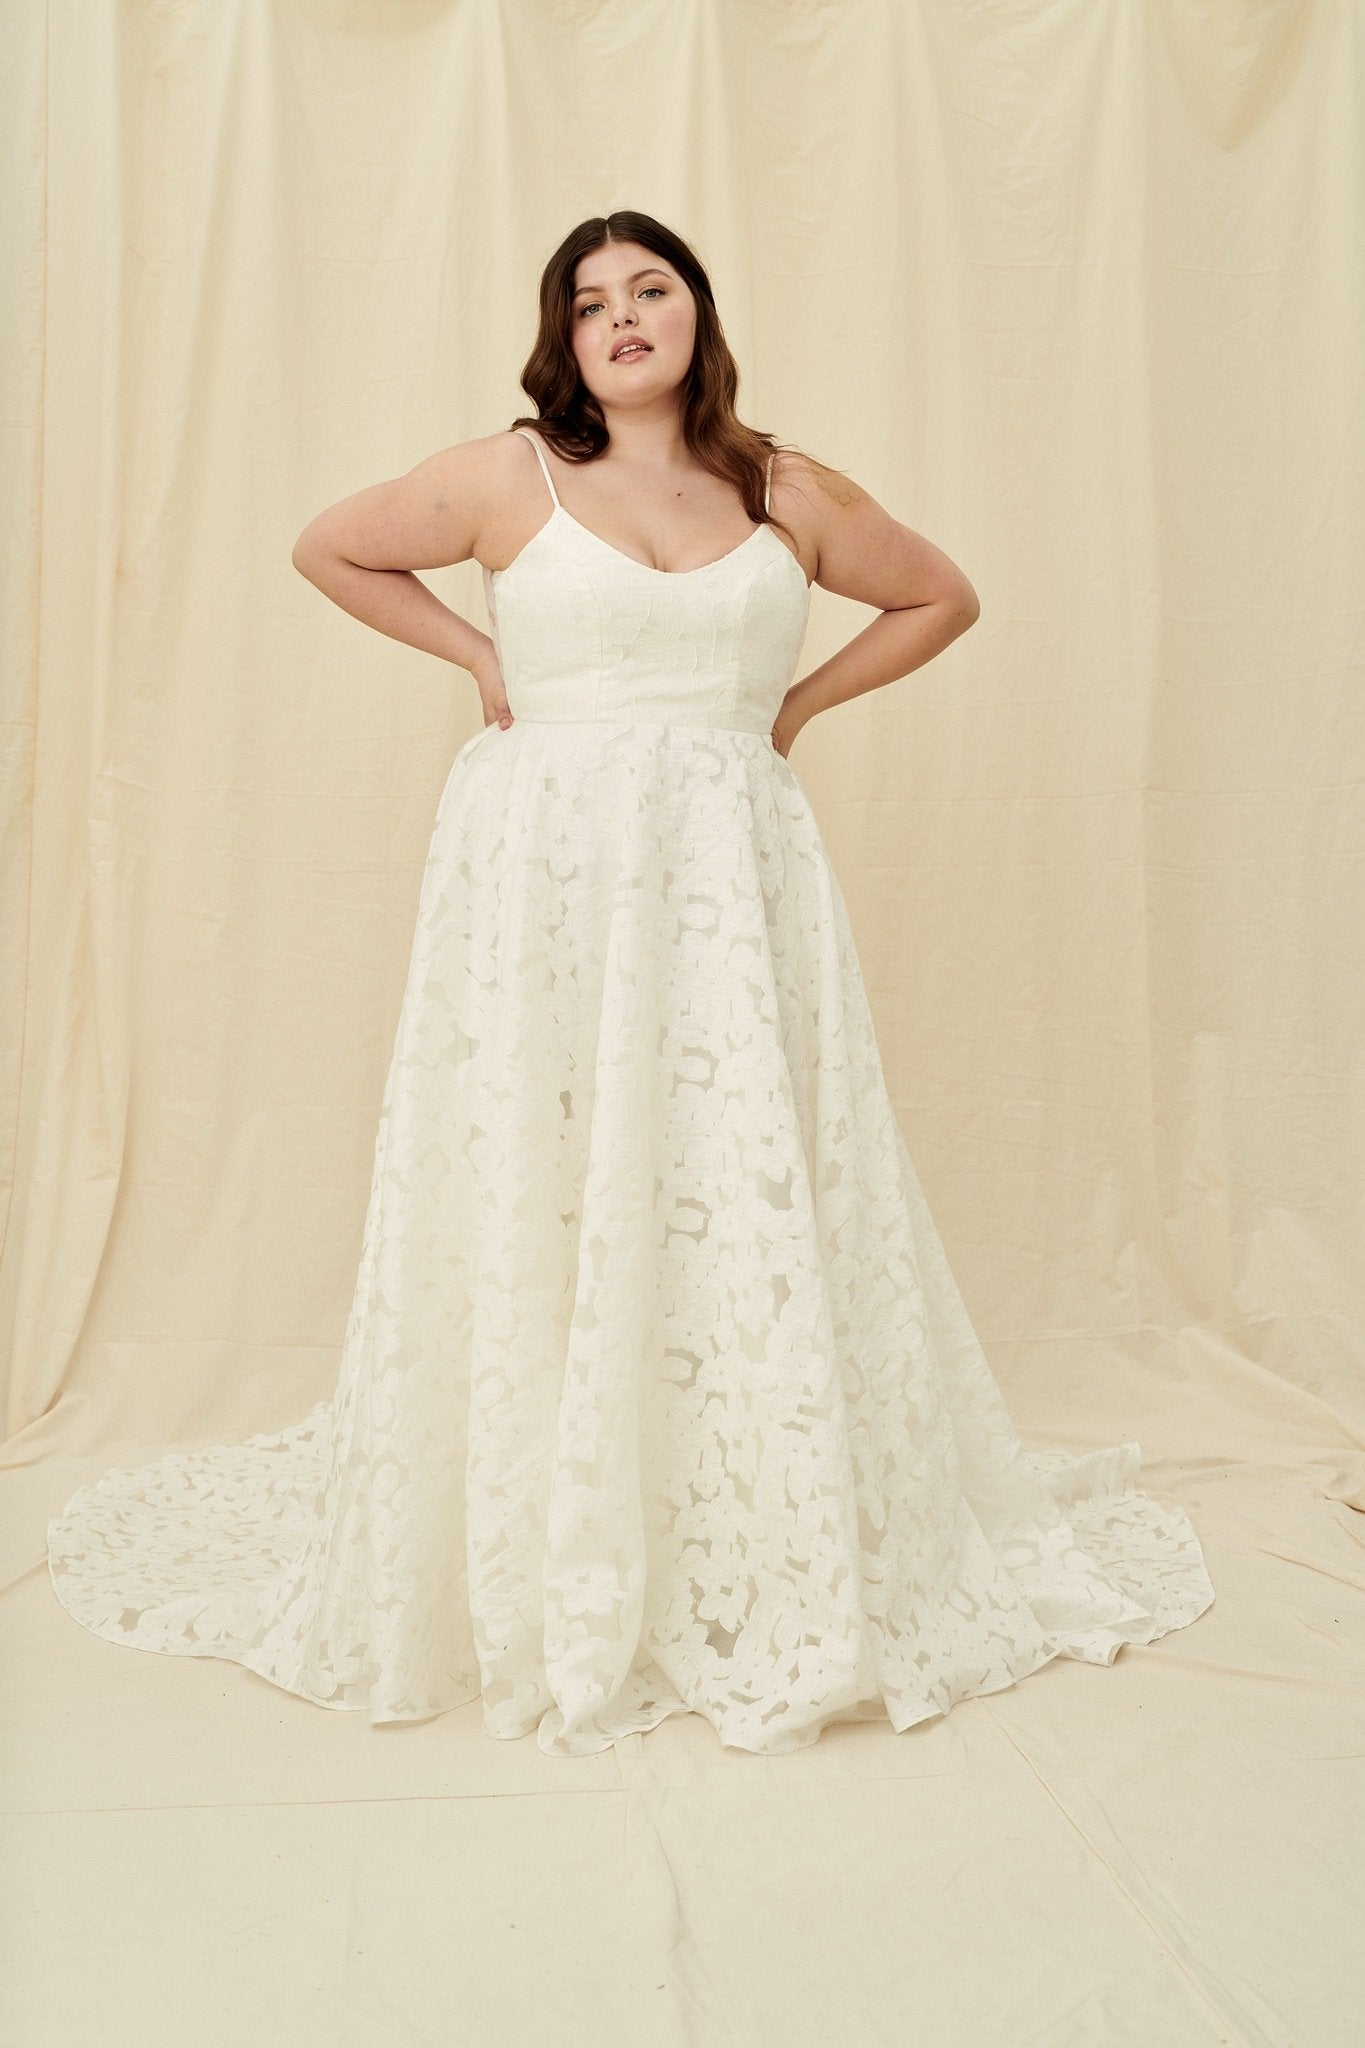 Plus size wedding dress in a floral lace print with a low scoop back, spaghetti straps, and a long train